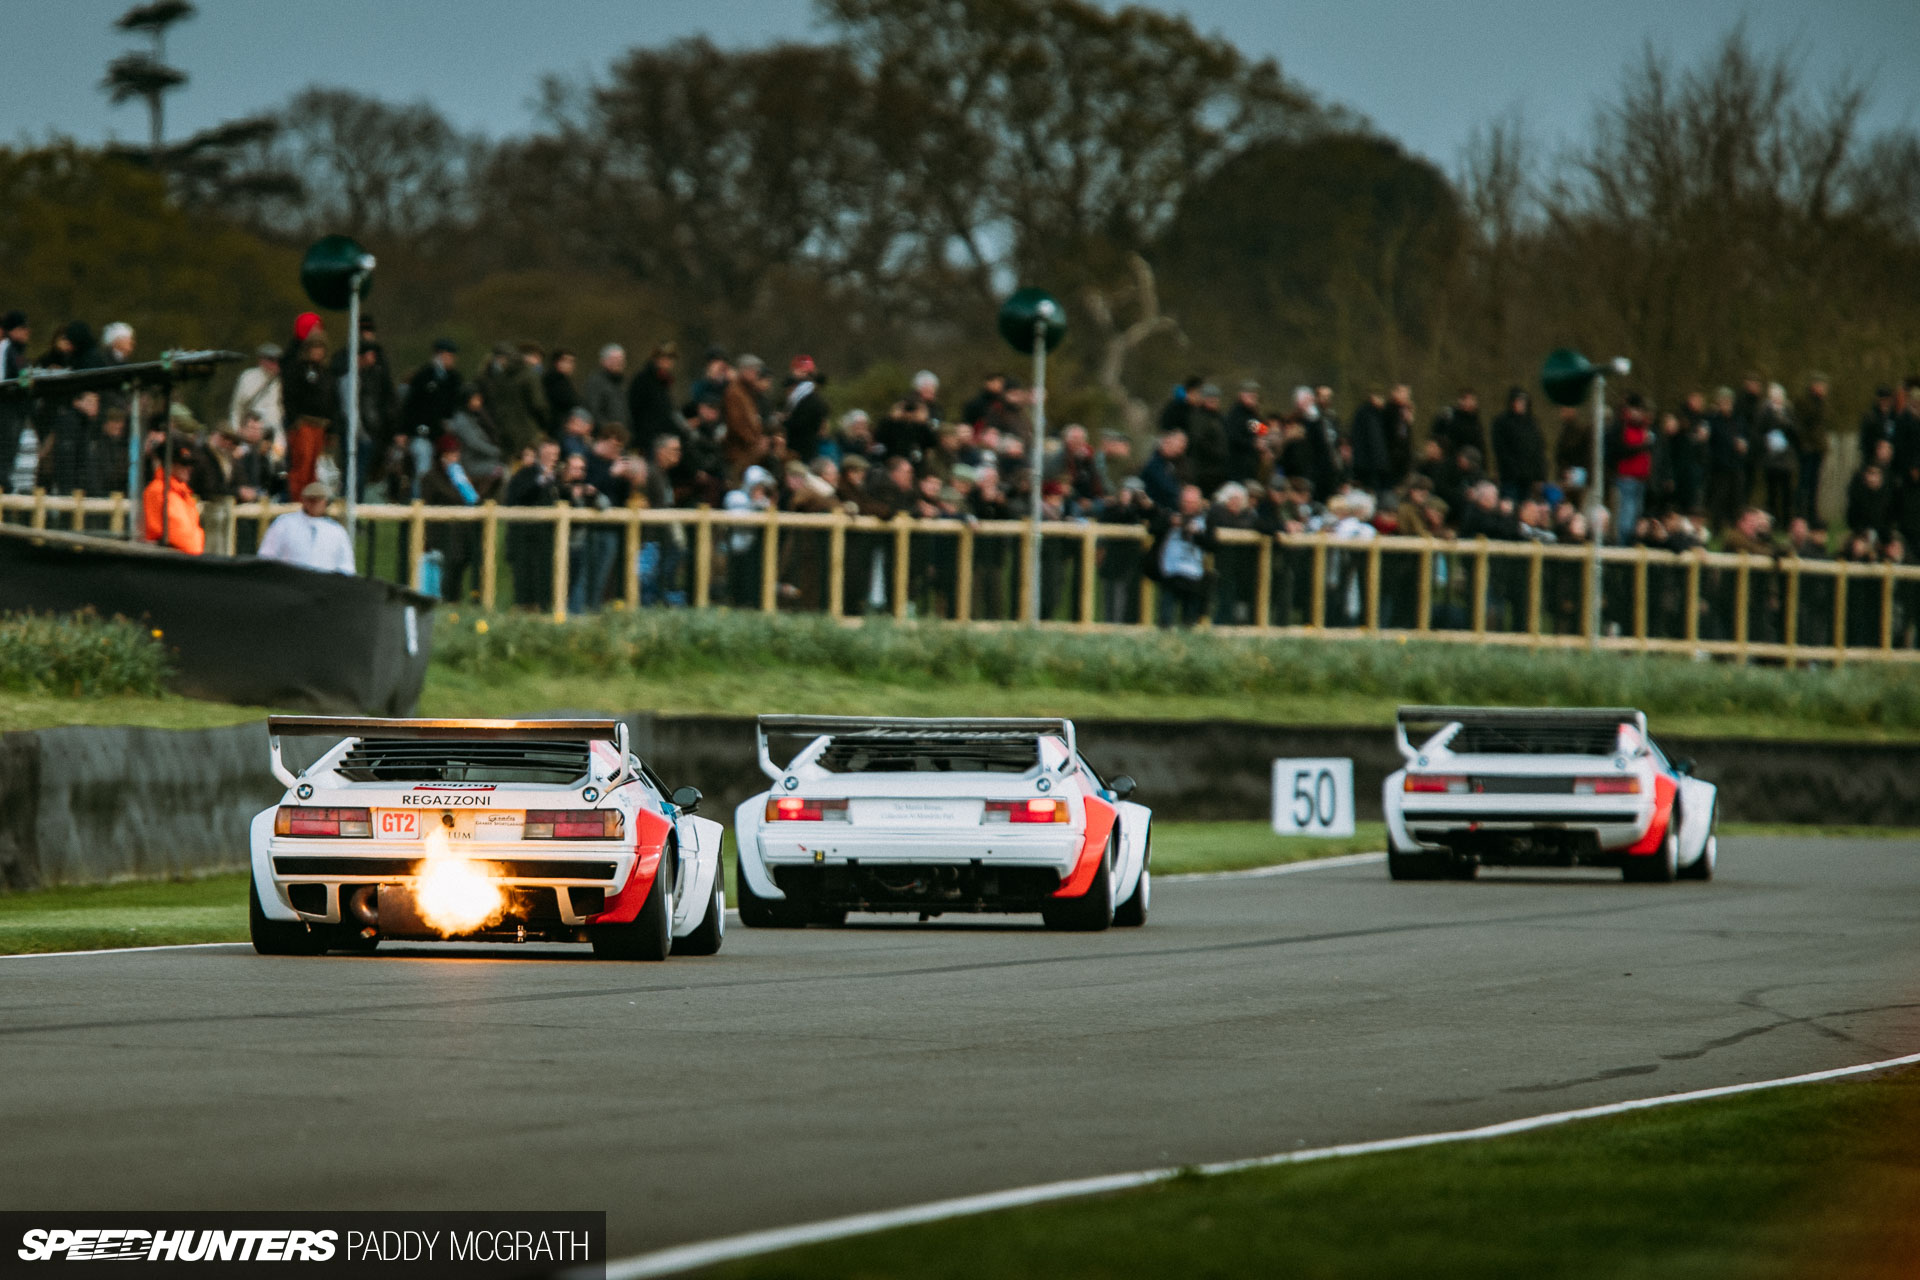 2019-Goodwood-77MM-Speedhunters-by-Paddy